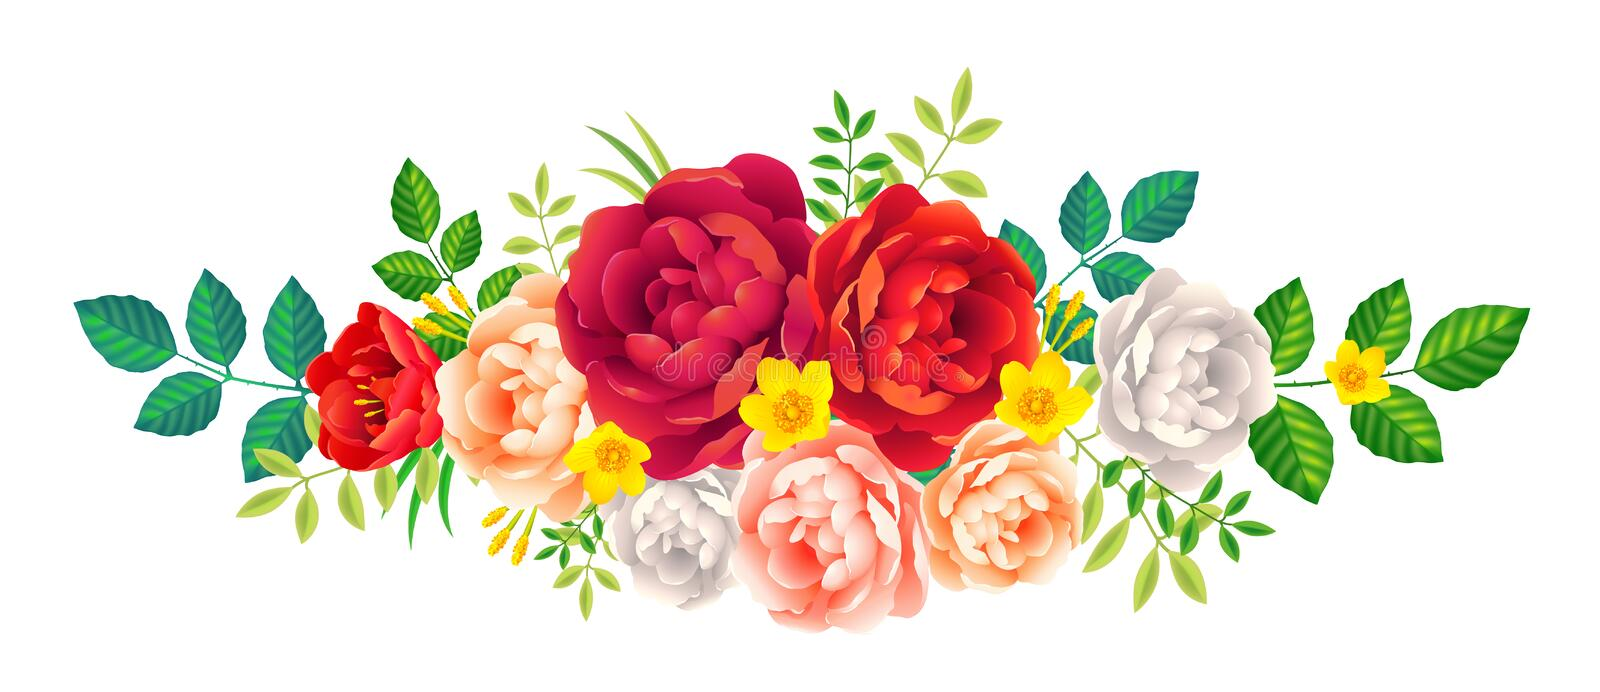 Bright pink and red peony flowers vector decorative element on white background vector illustration